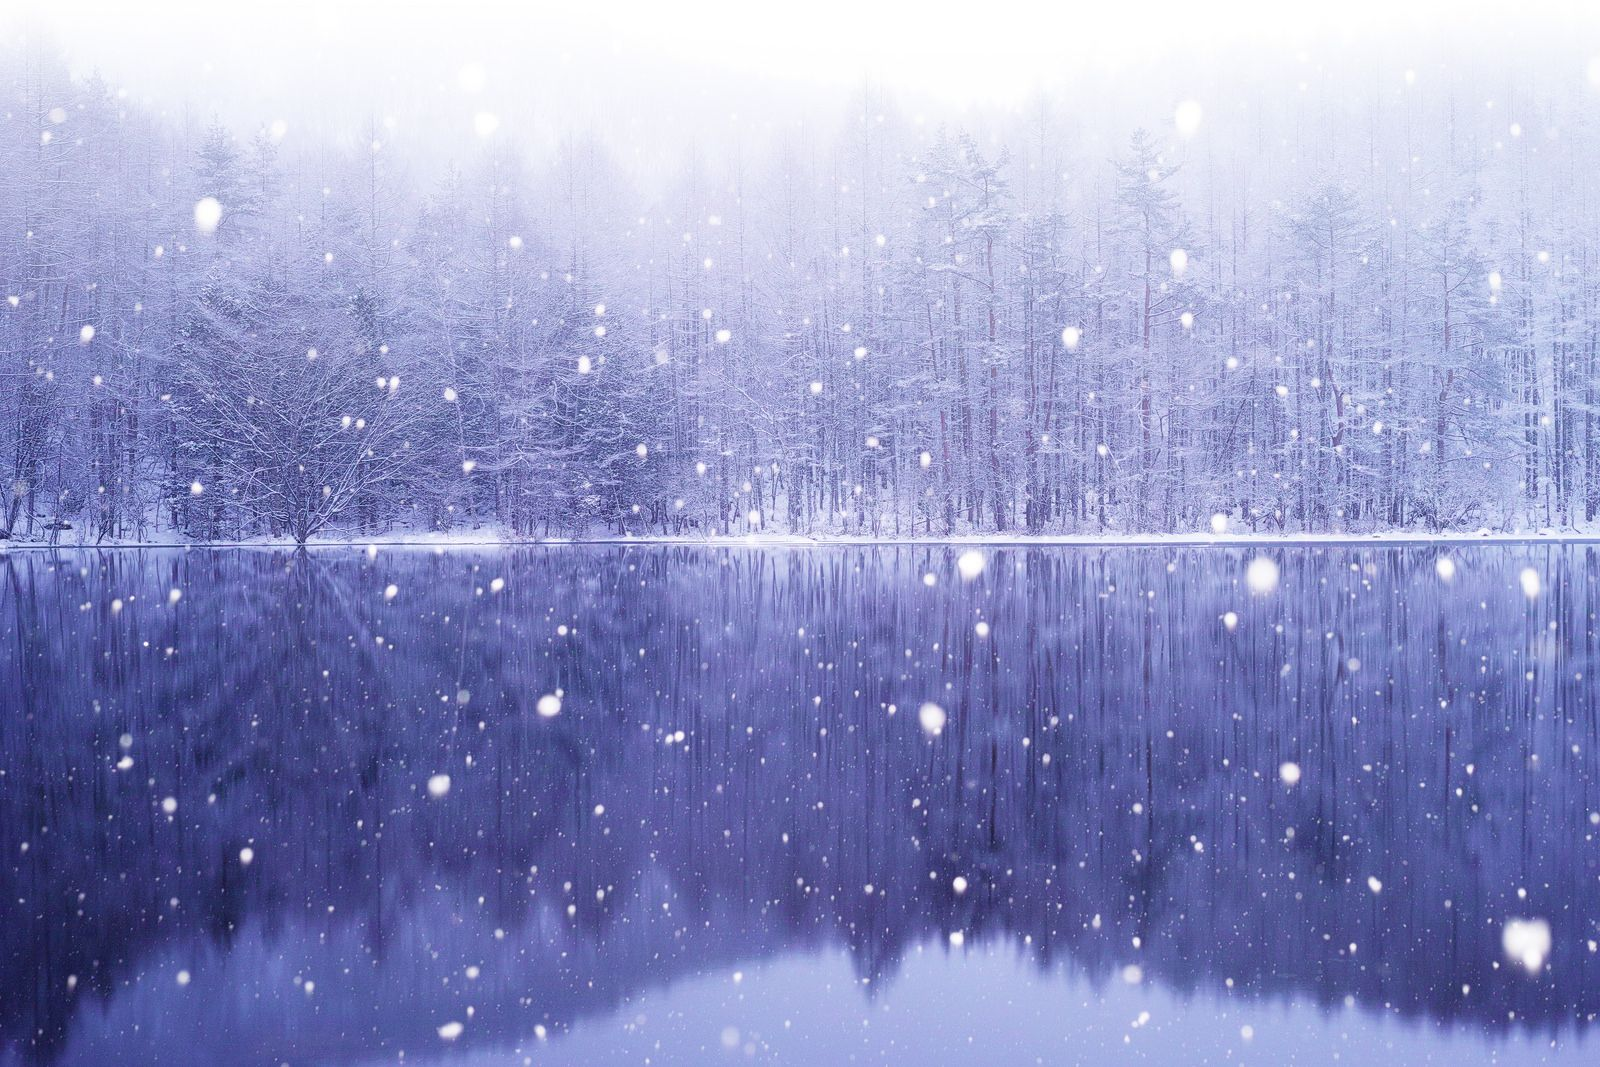 A Midwinter Night's Dream | Flickr - Photo Sharing!